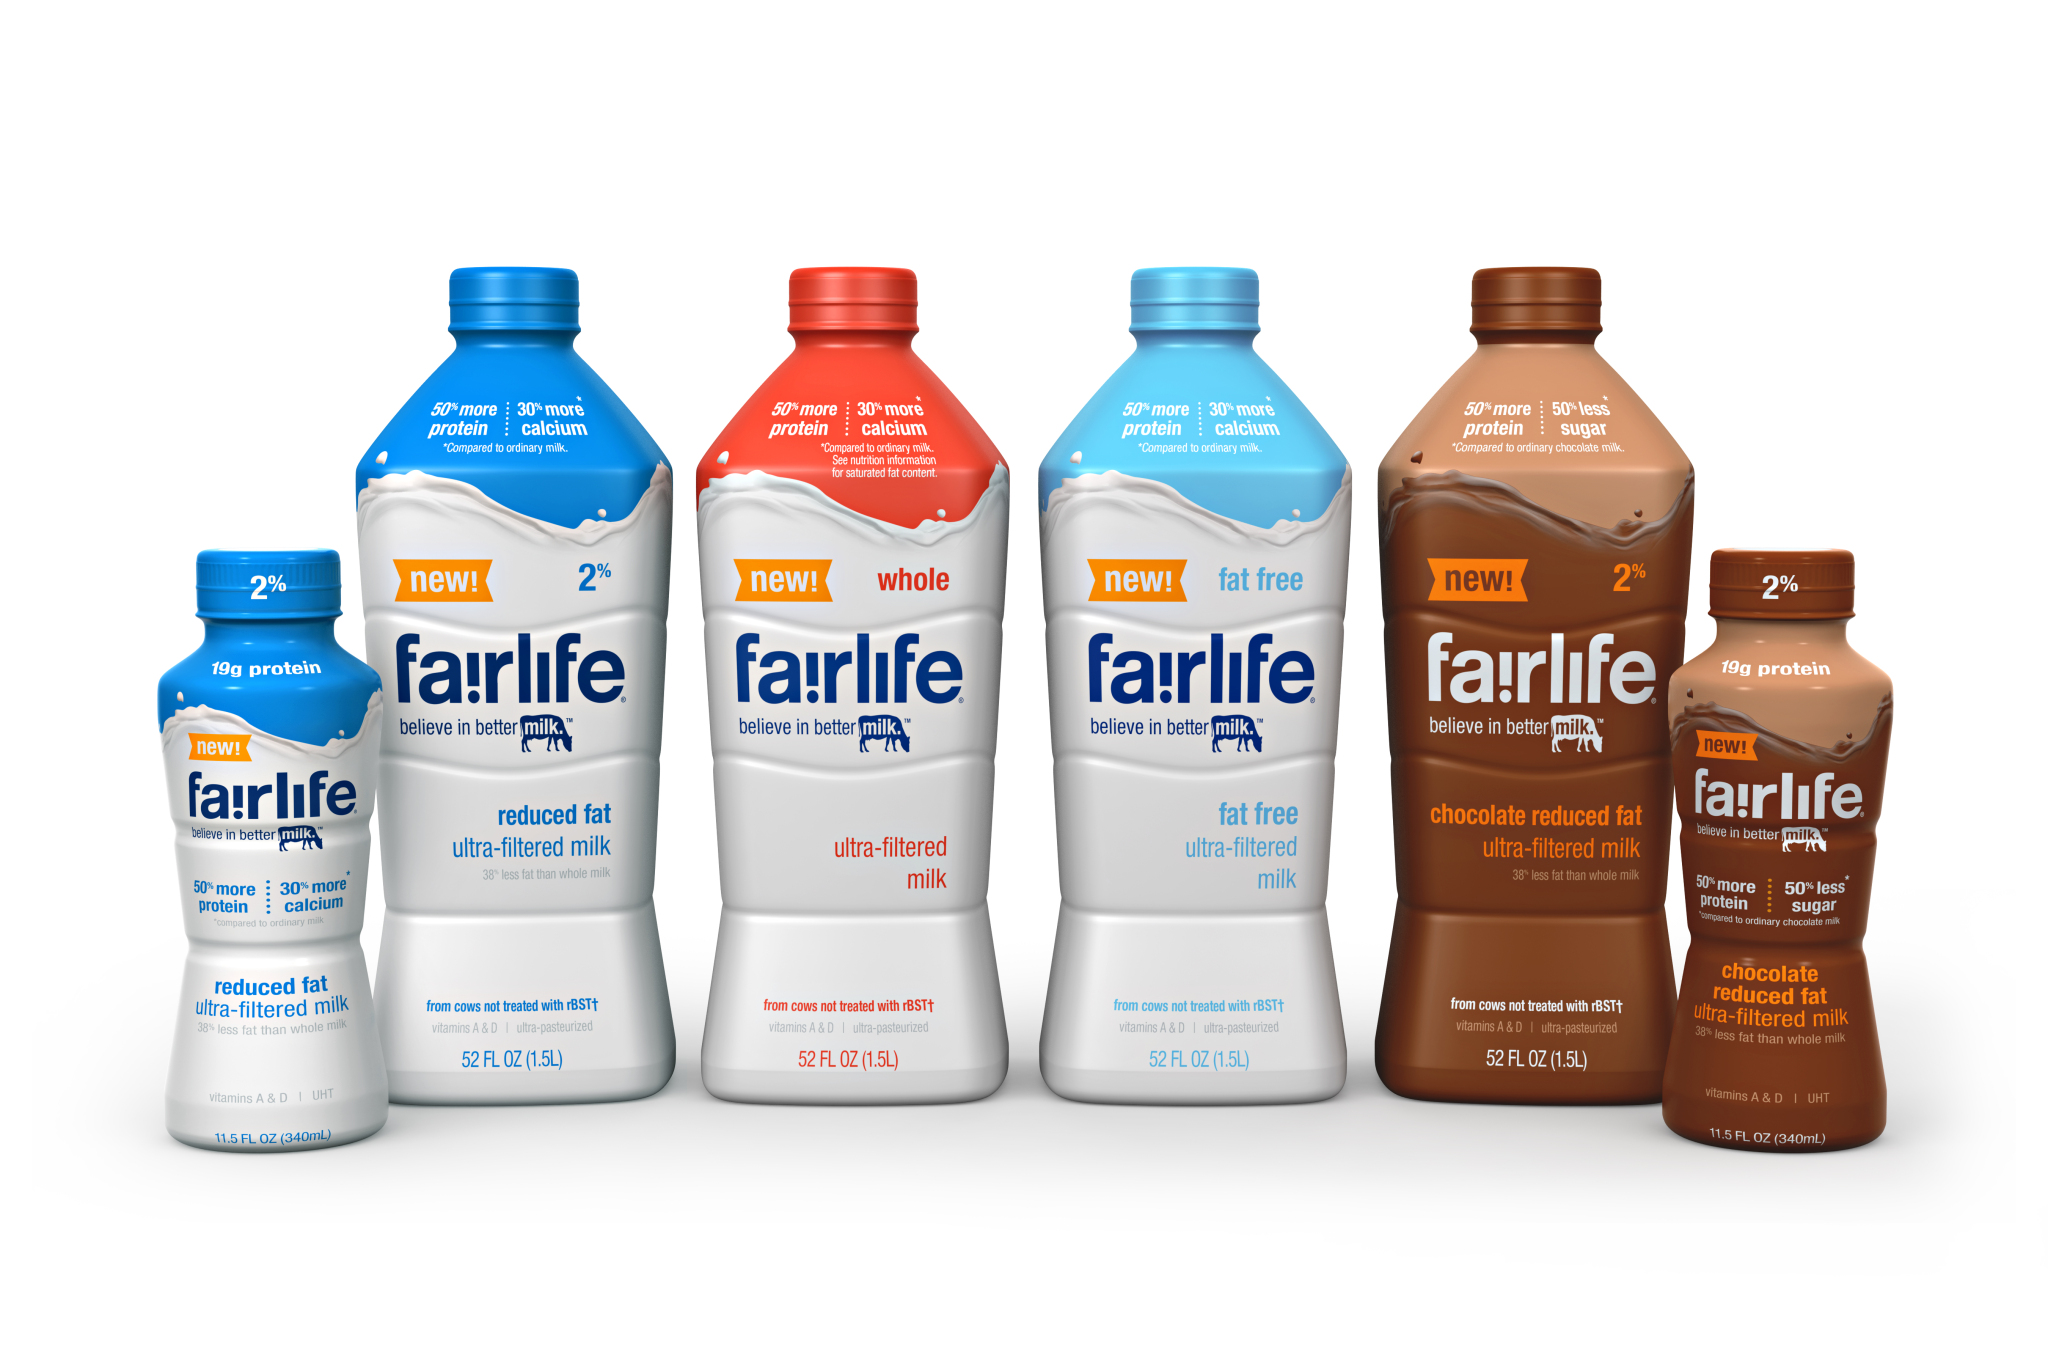 fairlife product